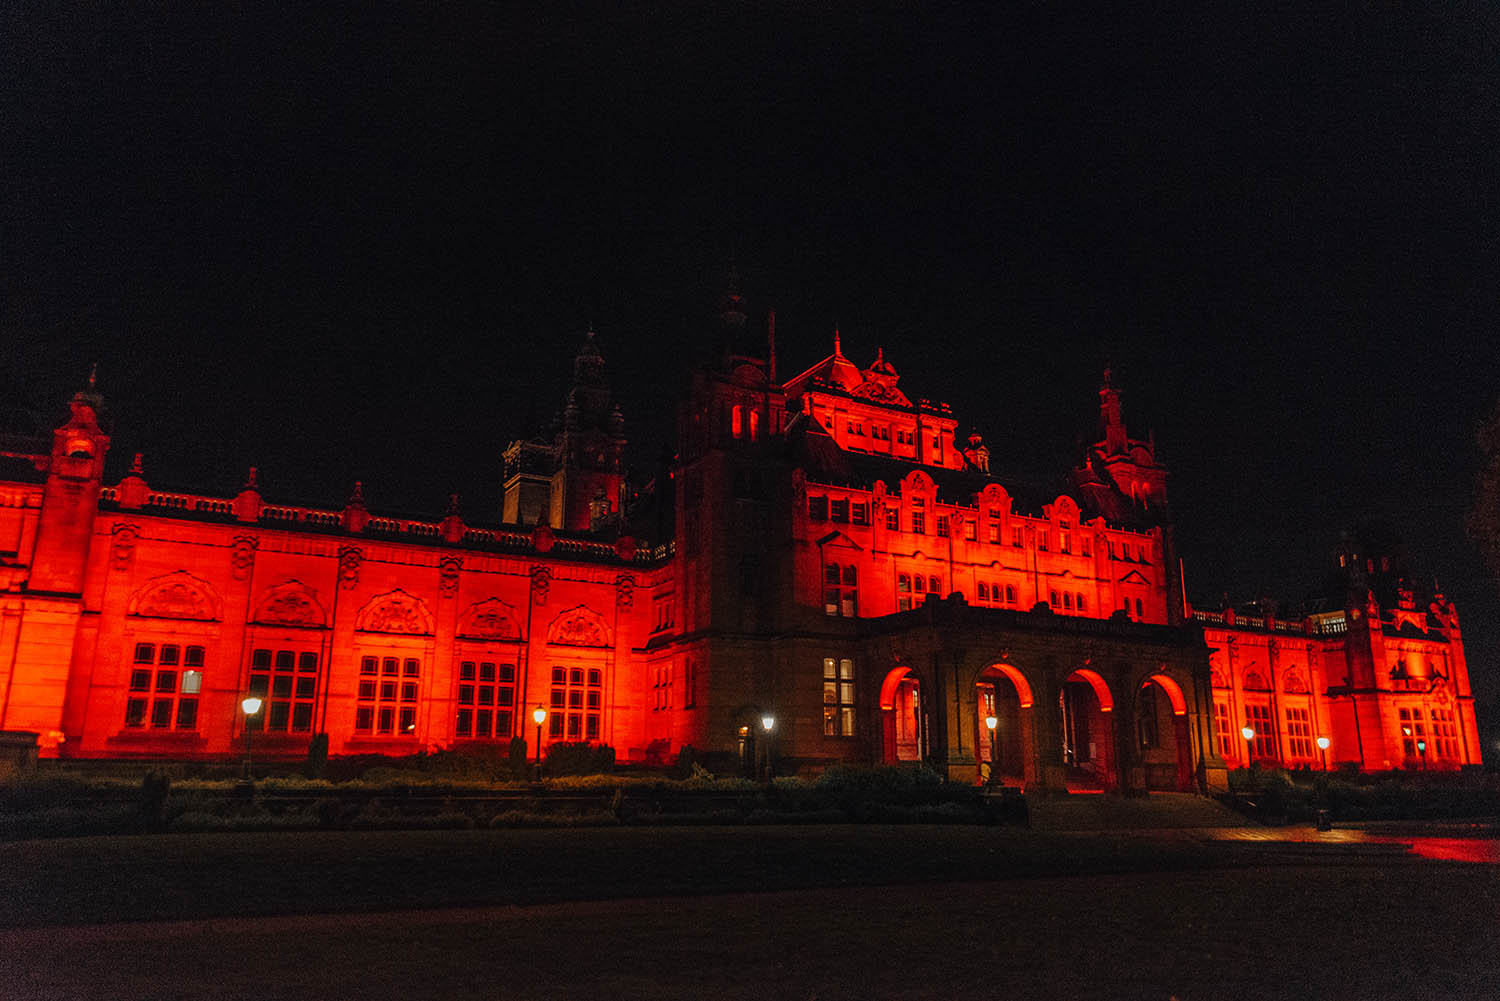 The Glasgow Kelvingrove Art Gallery and Museum upplyst på kvällen